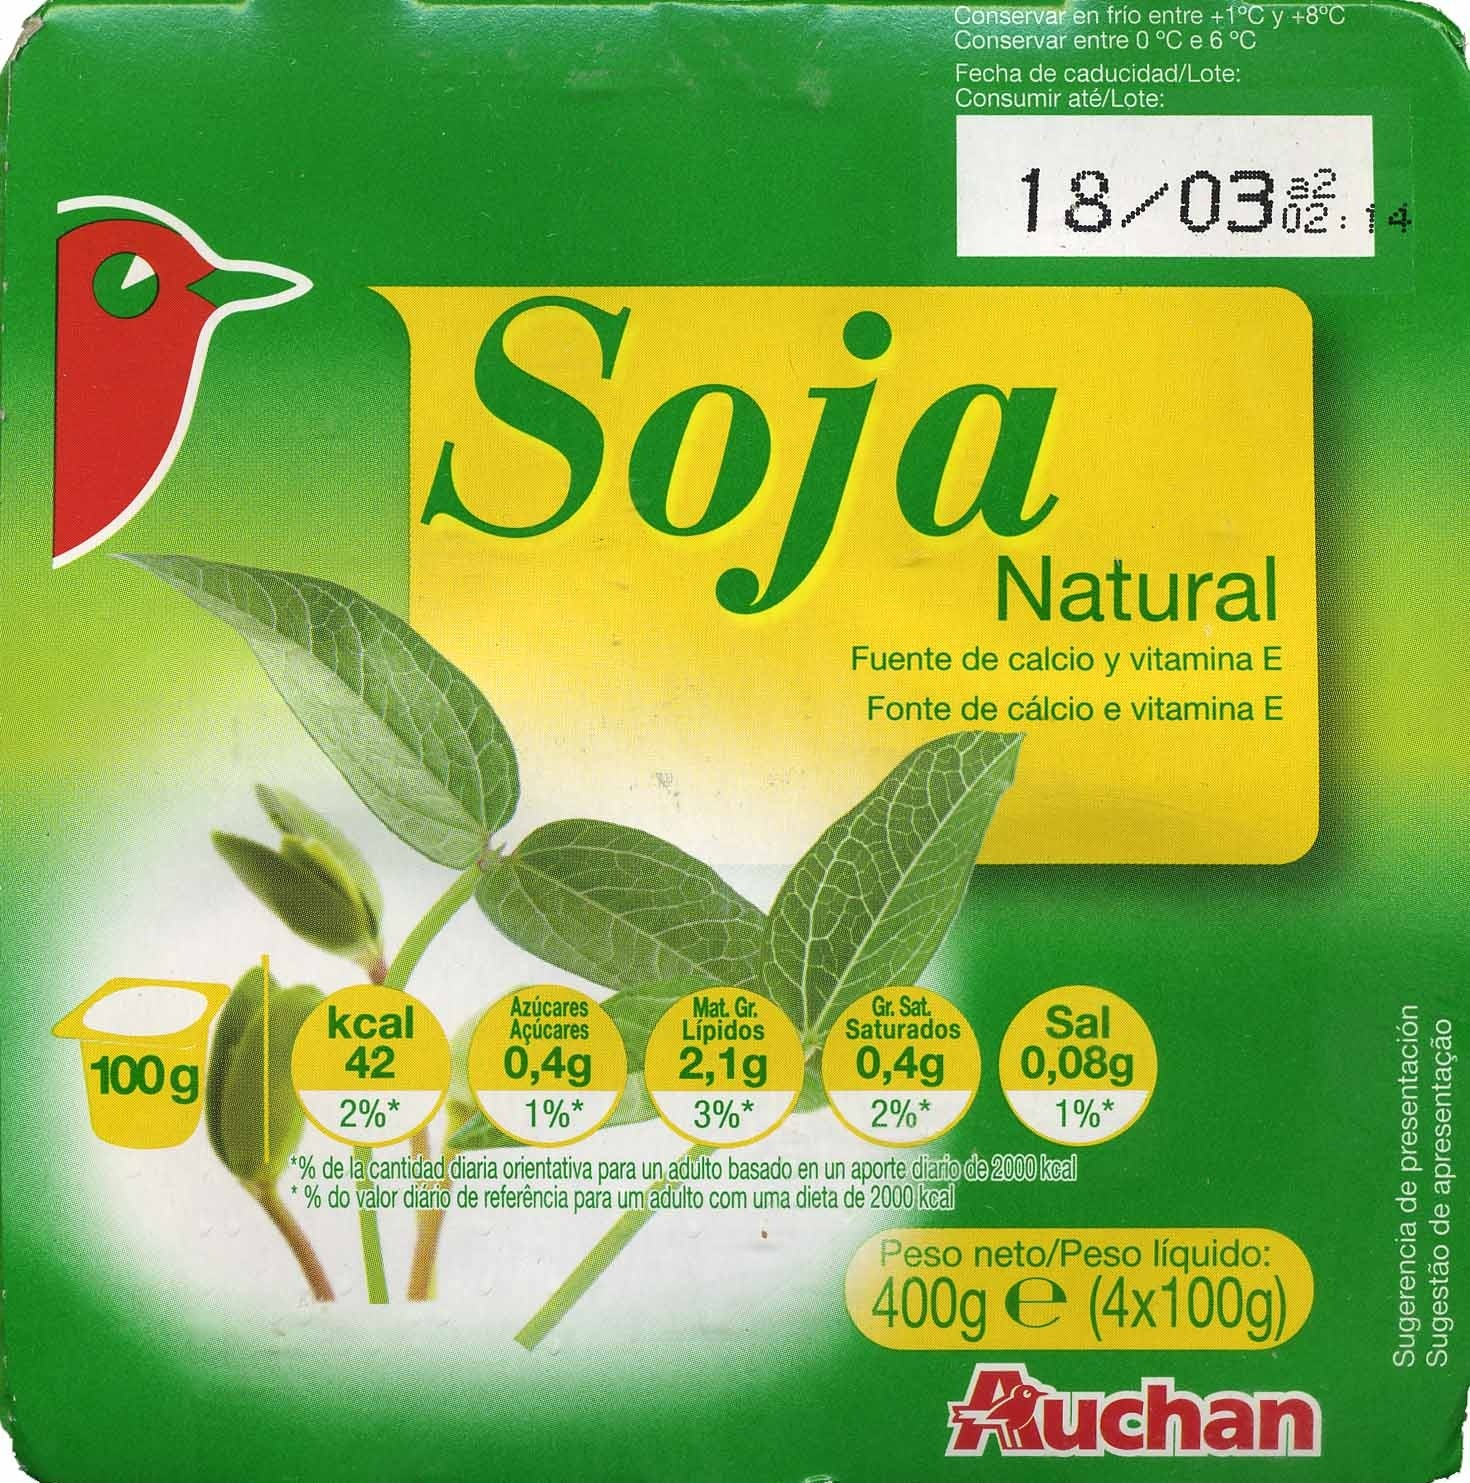 Yogur de soja natural Auchan - Product